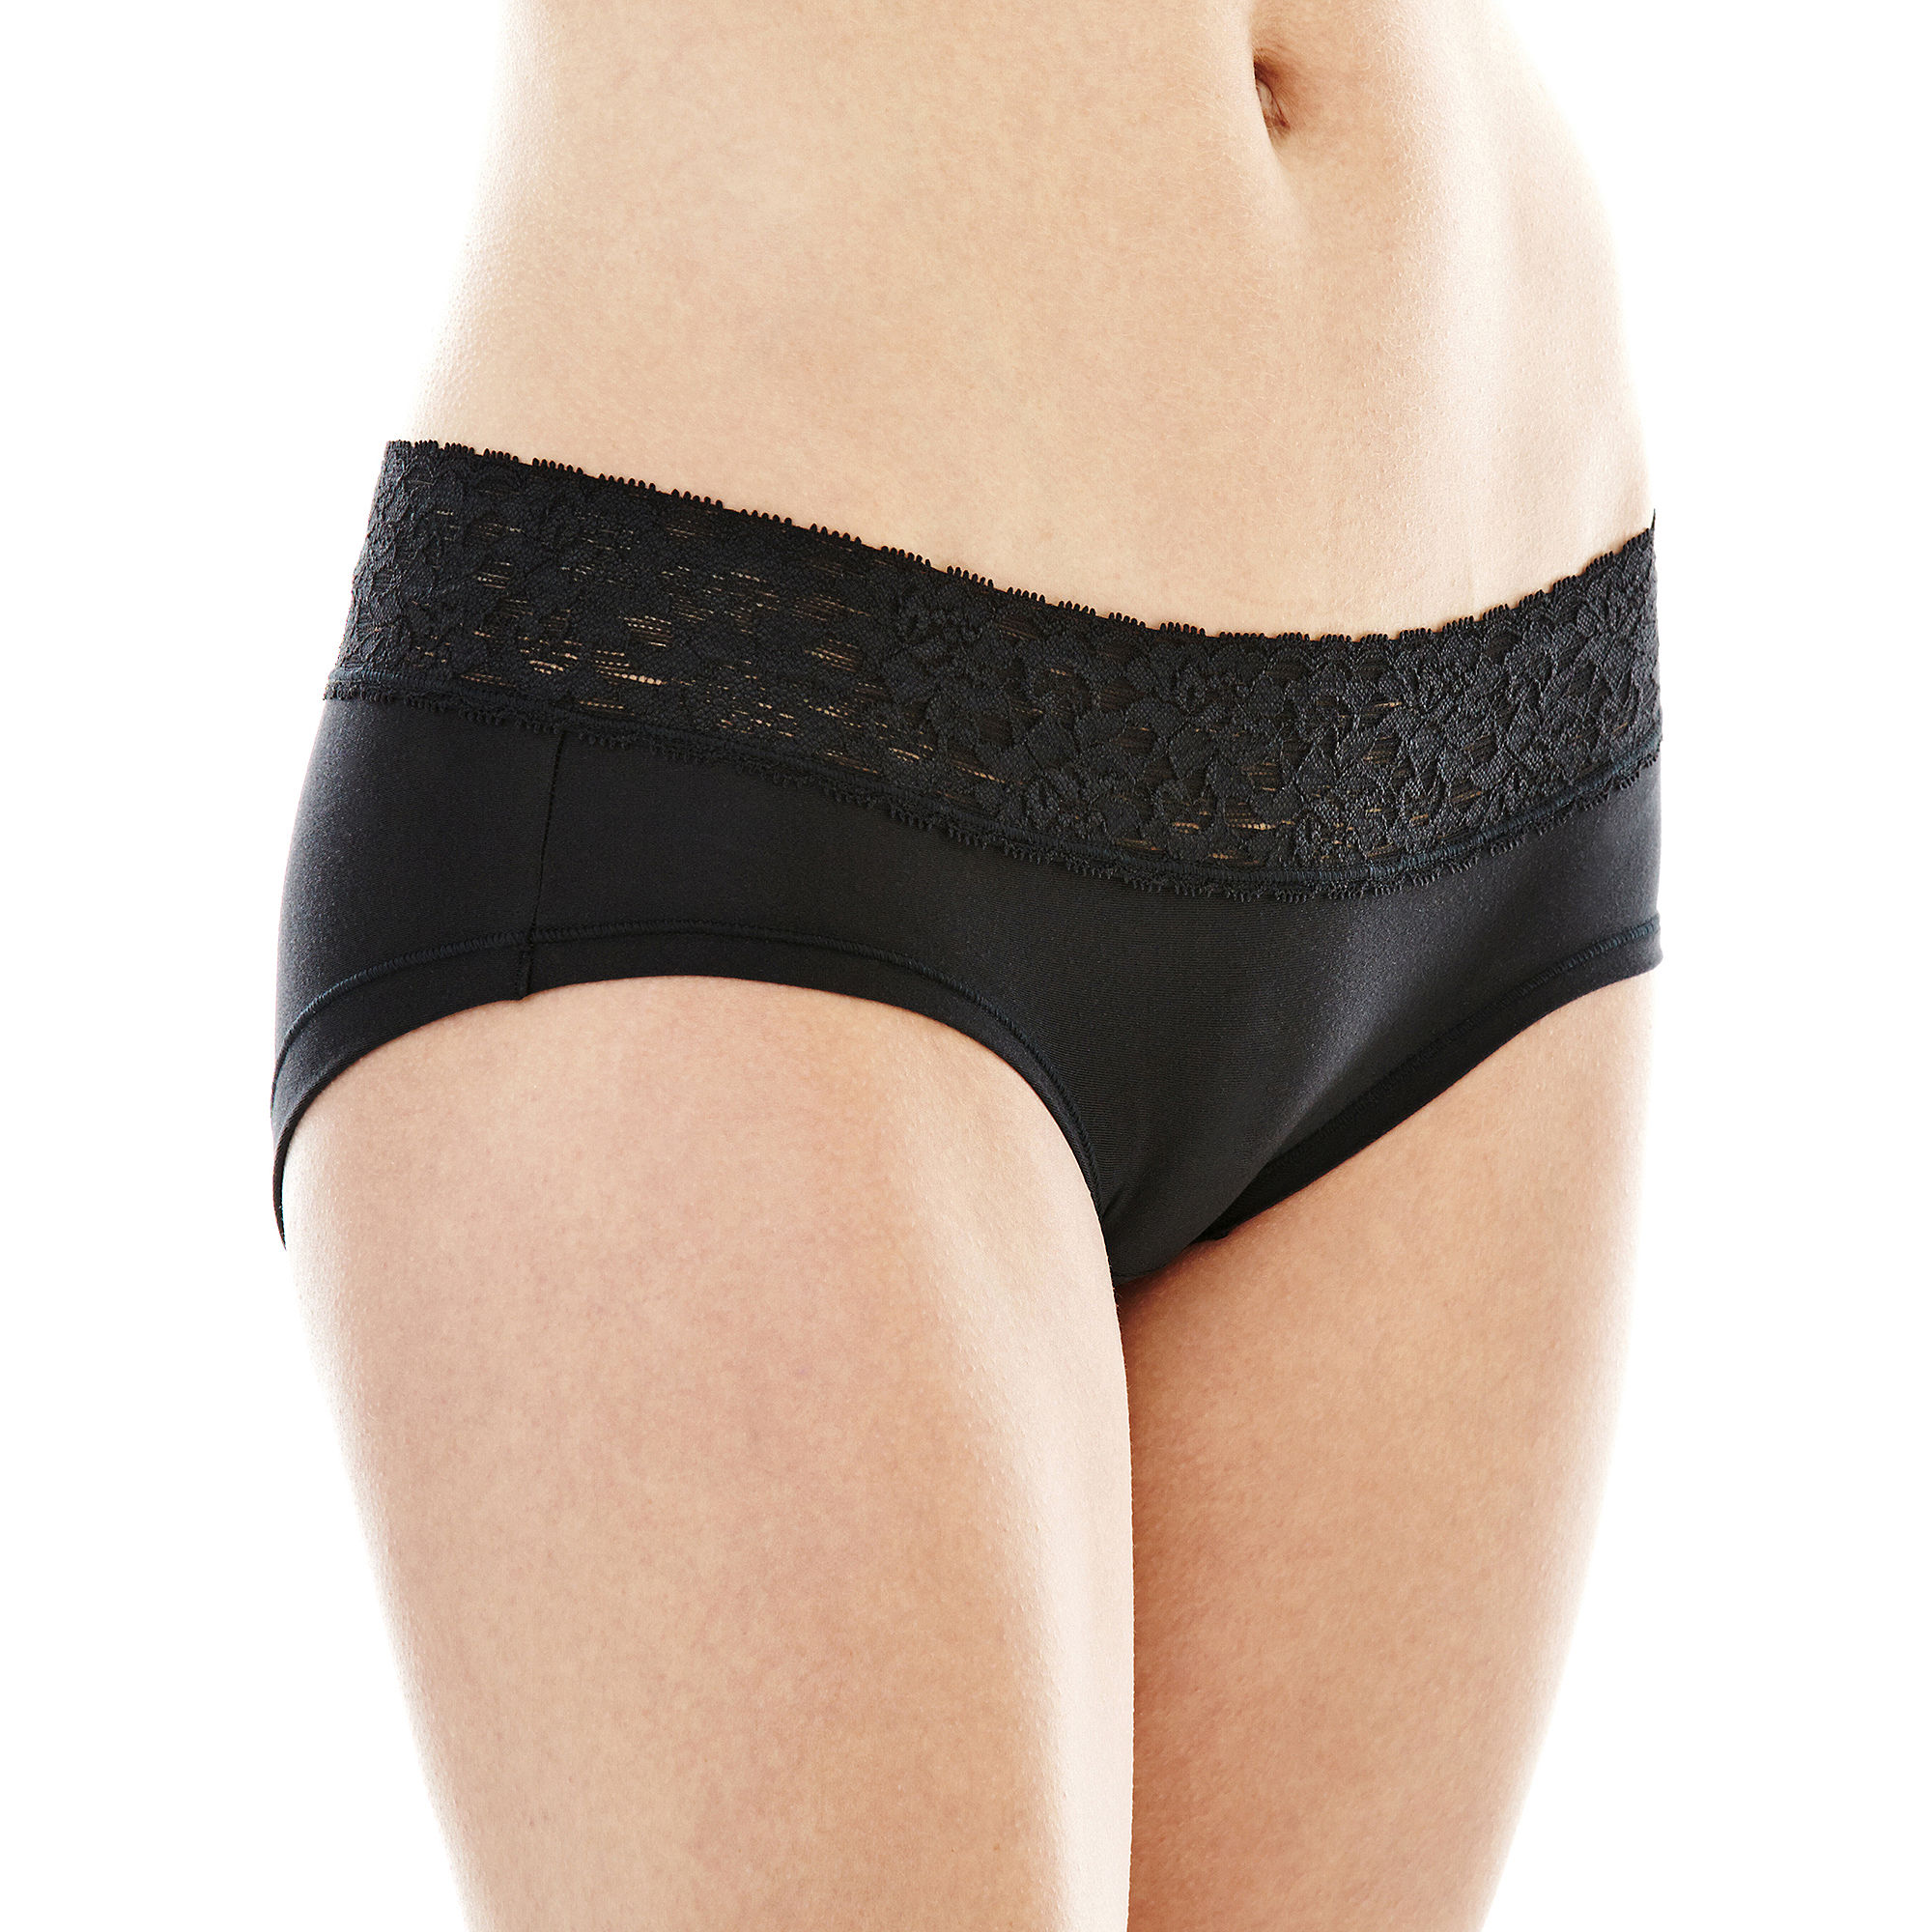 9487a30d9aa8 ... Maidenform Dream Lace-Trim Hipster Panties - DM0004. UPC 078715570620